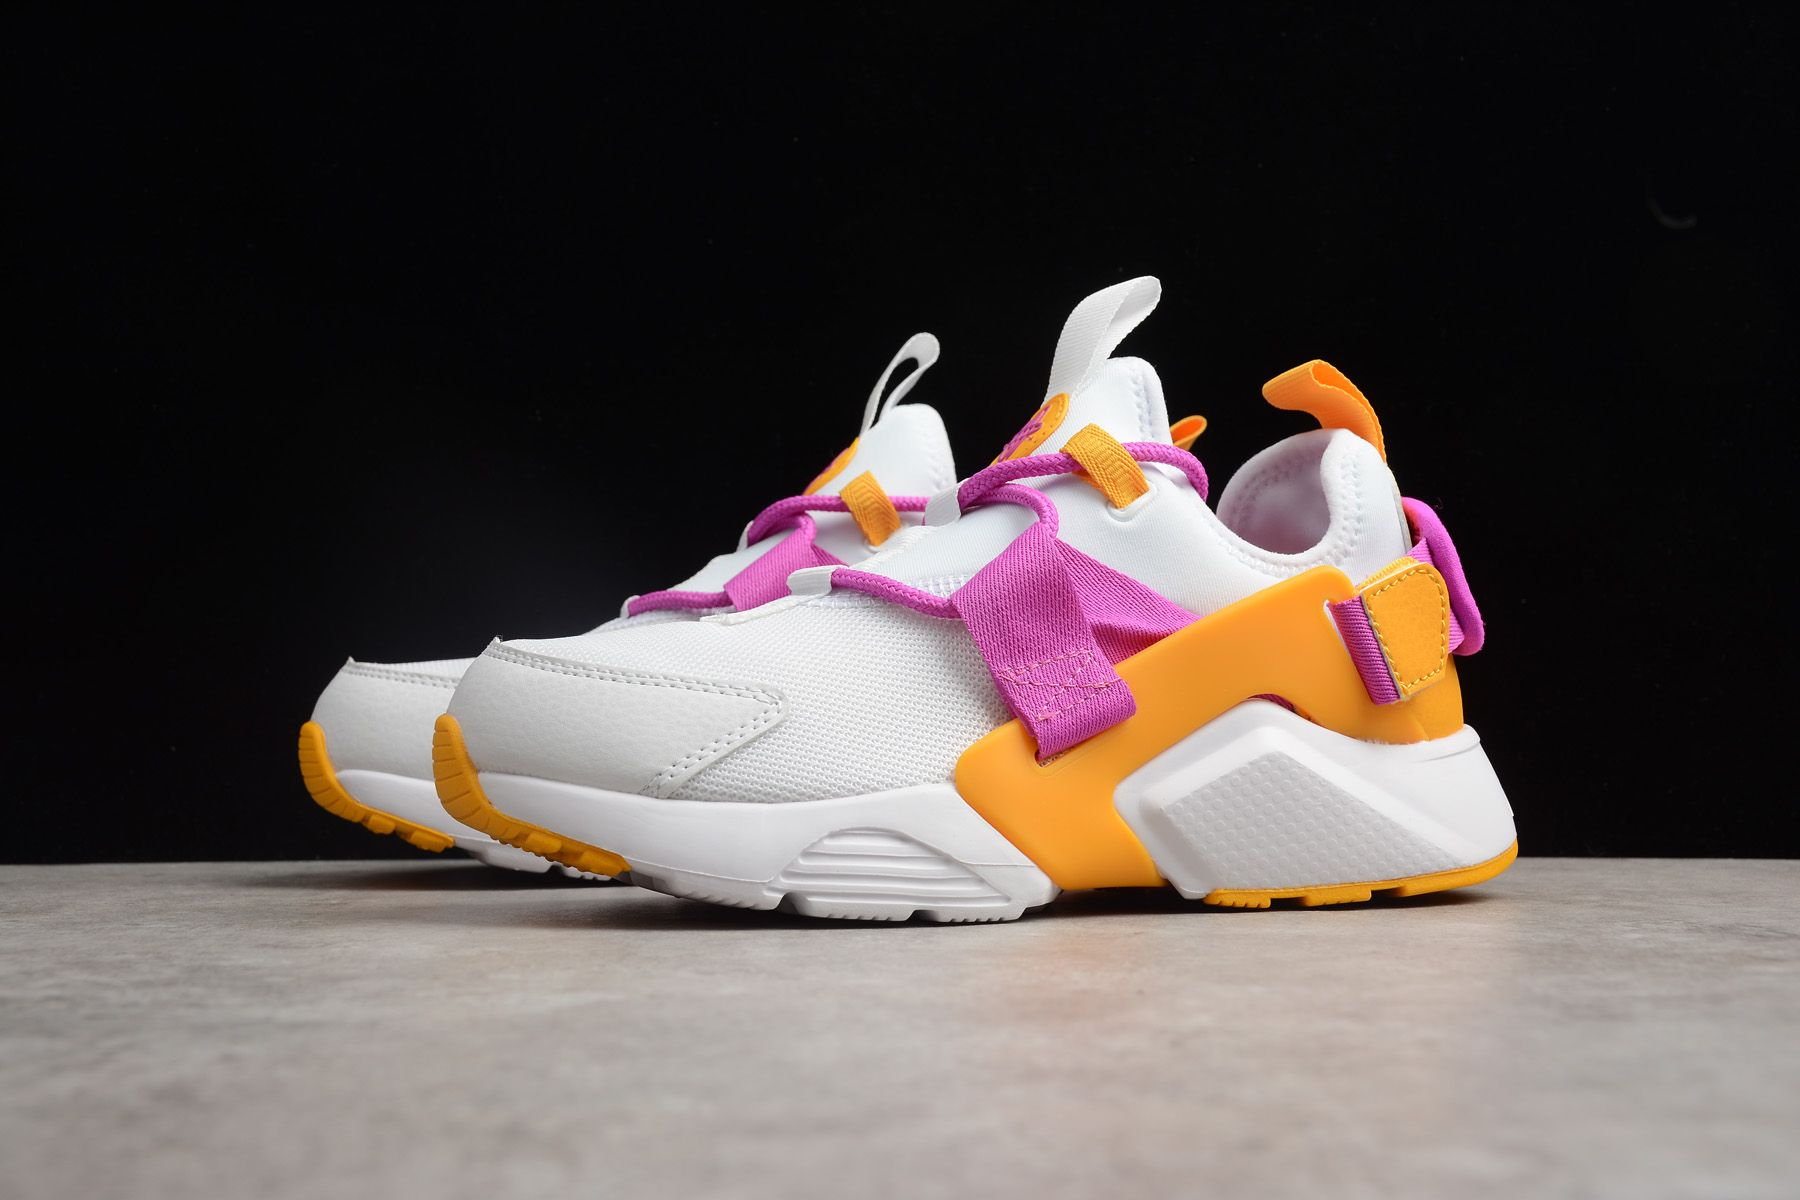 c84b6cf46d11d Women s Nike Air Huarache City Low Fuschia White AH6804-102 in 2019 ...